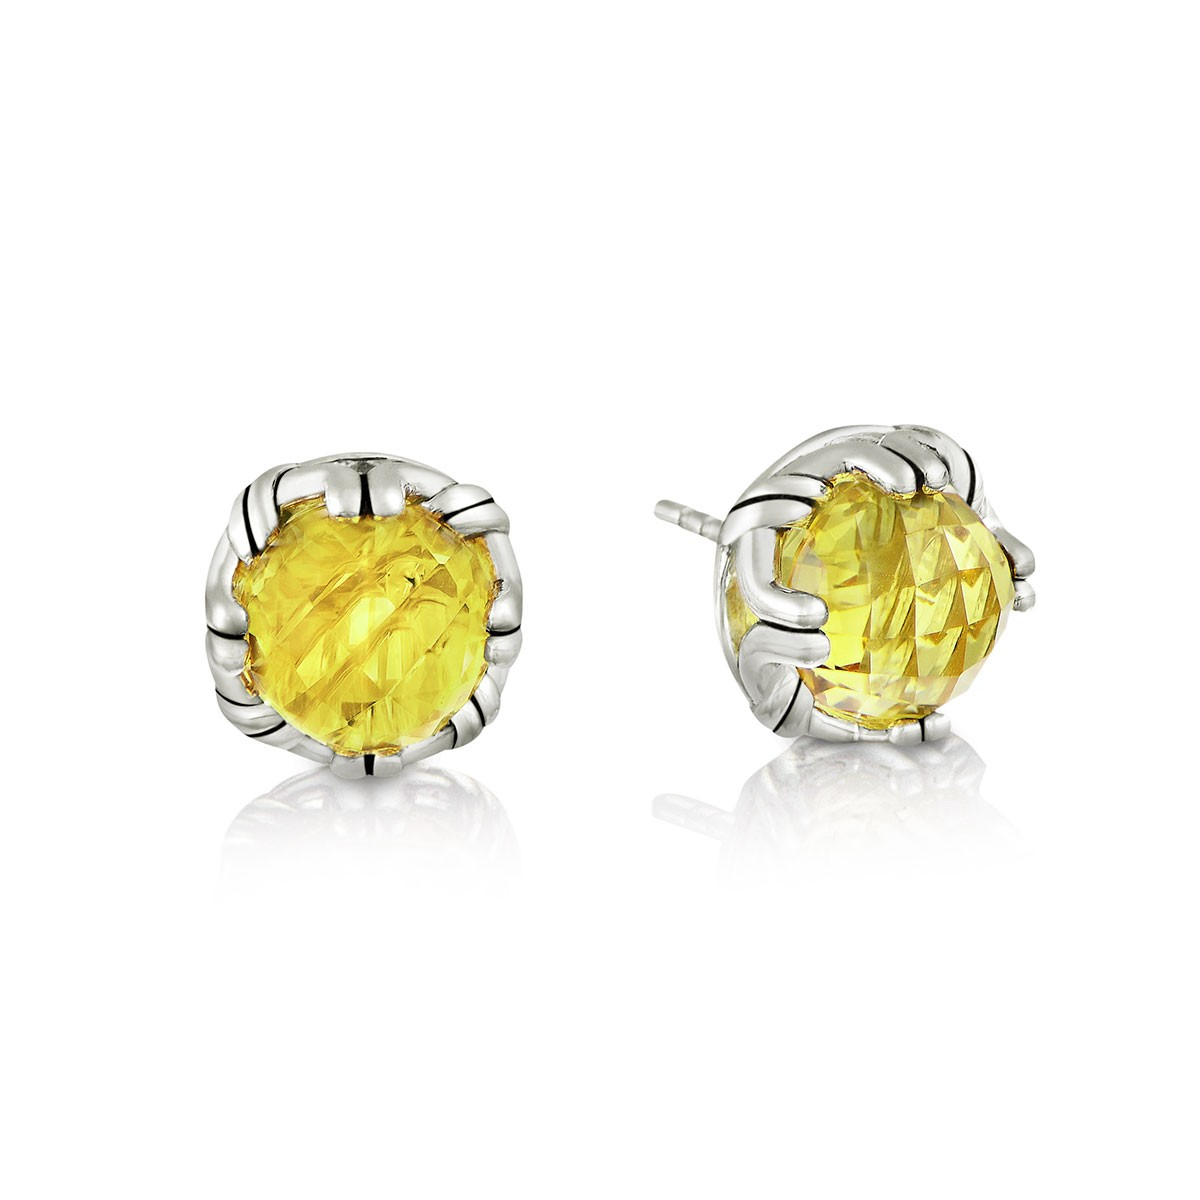 from jewellery oval image earrings stud gold citrine new yellow